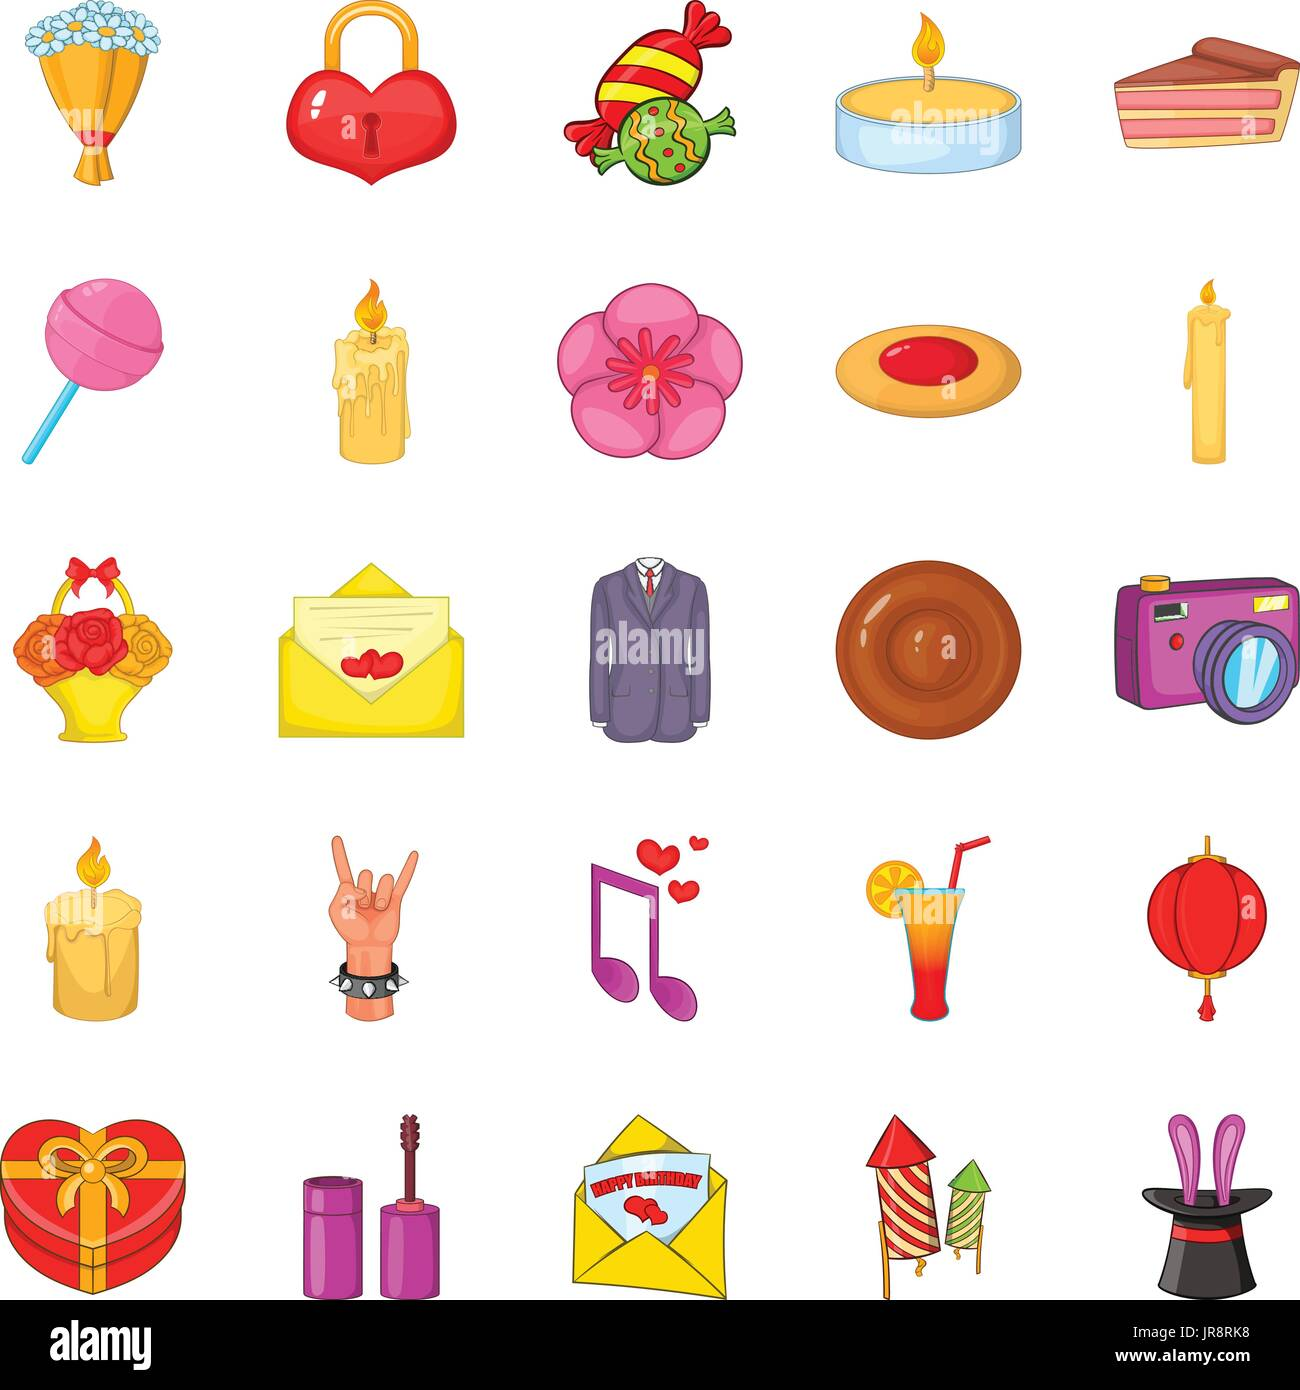 Revels icons set, cartoon style - Stock Image